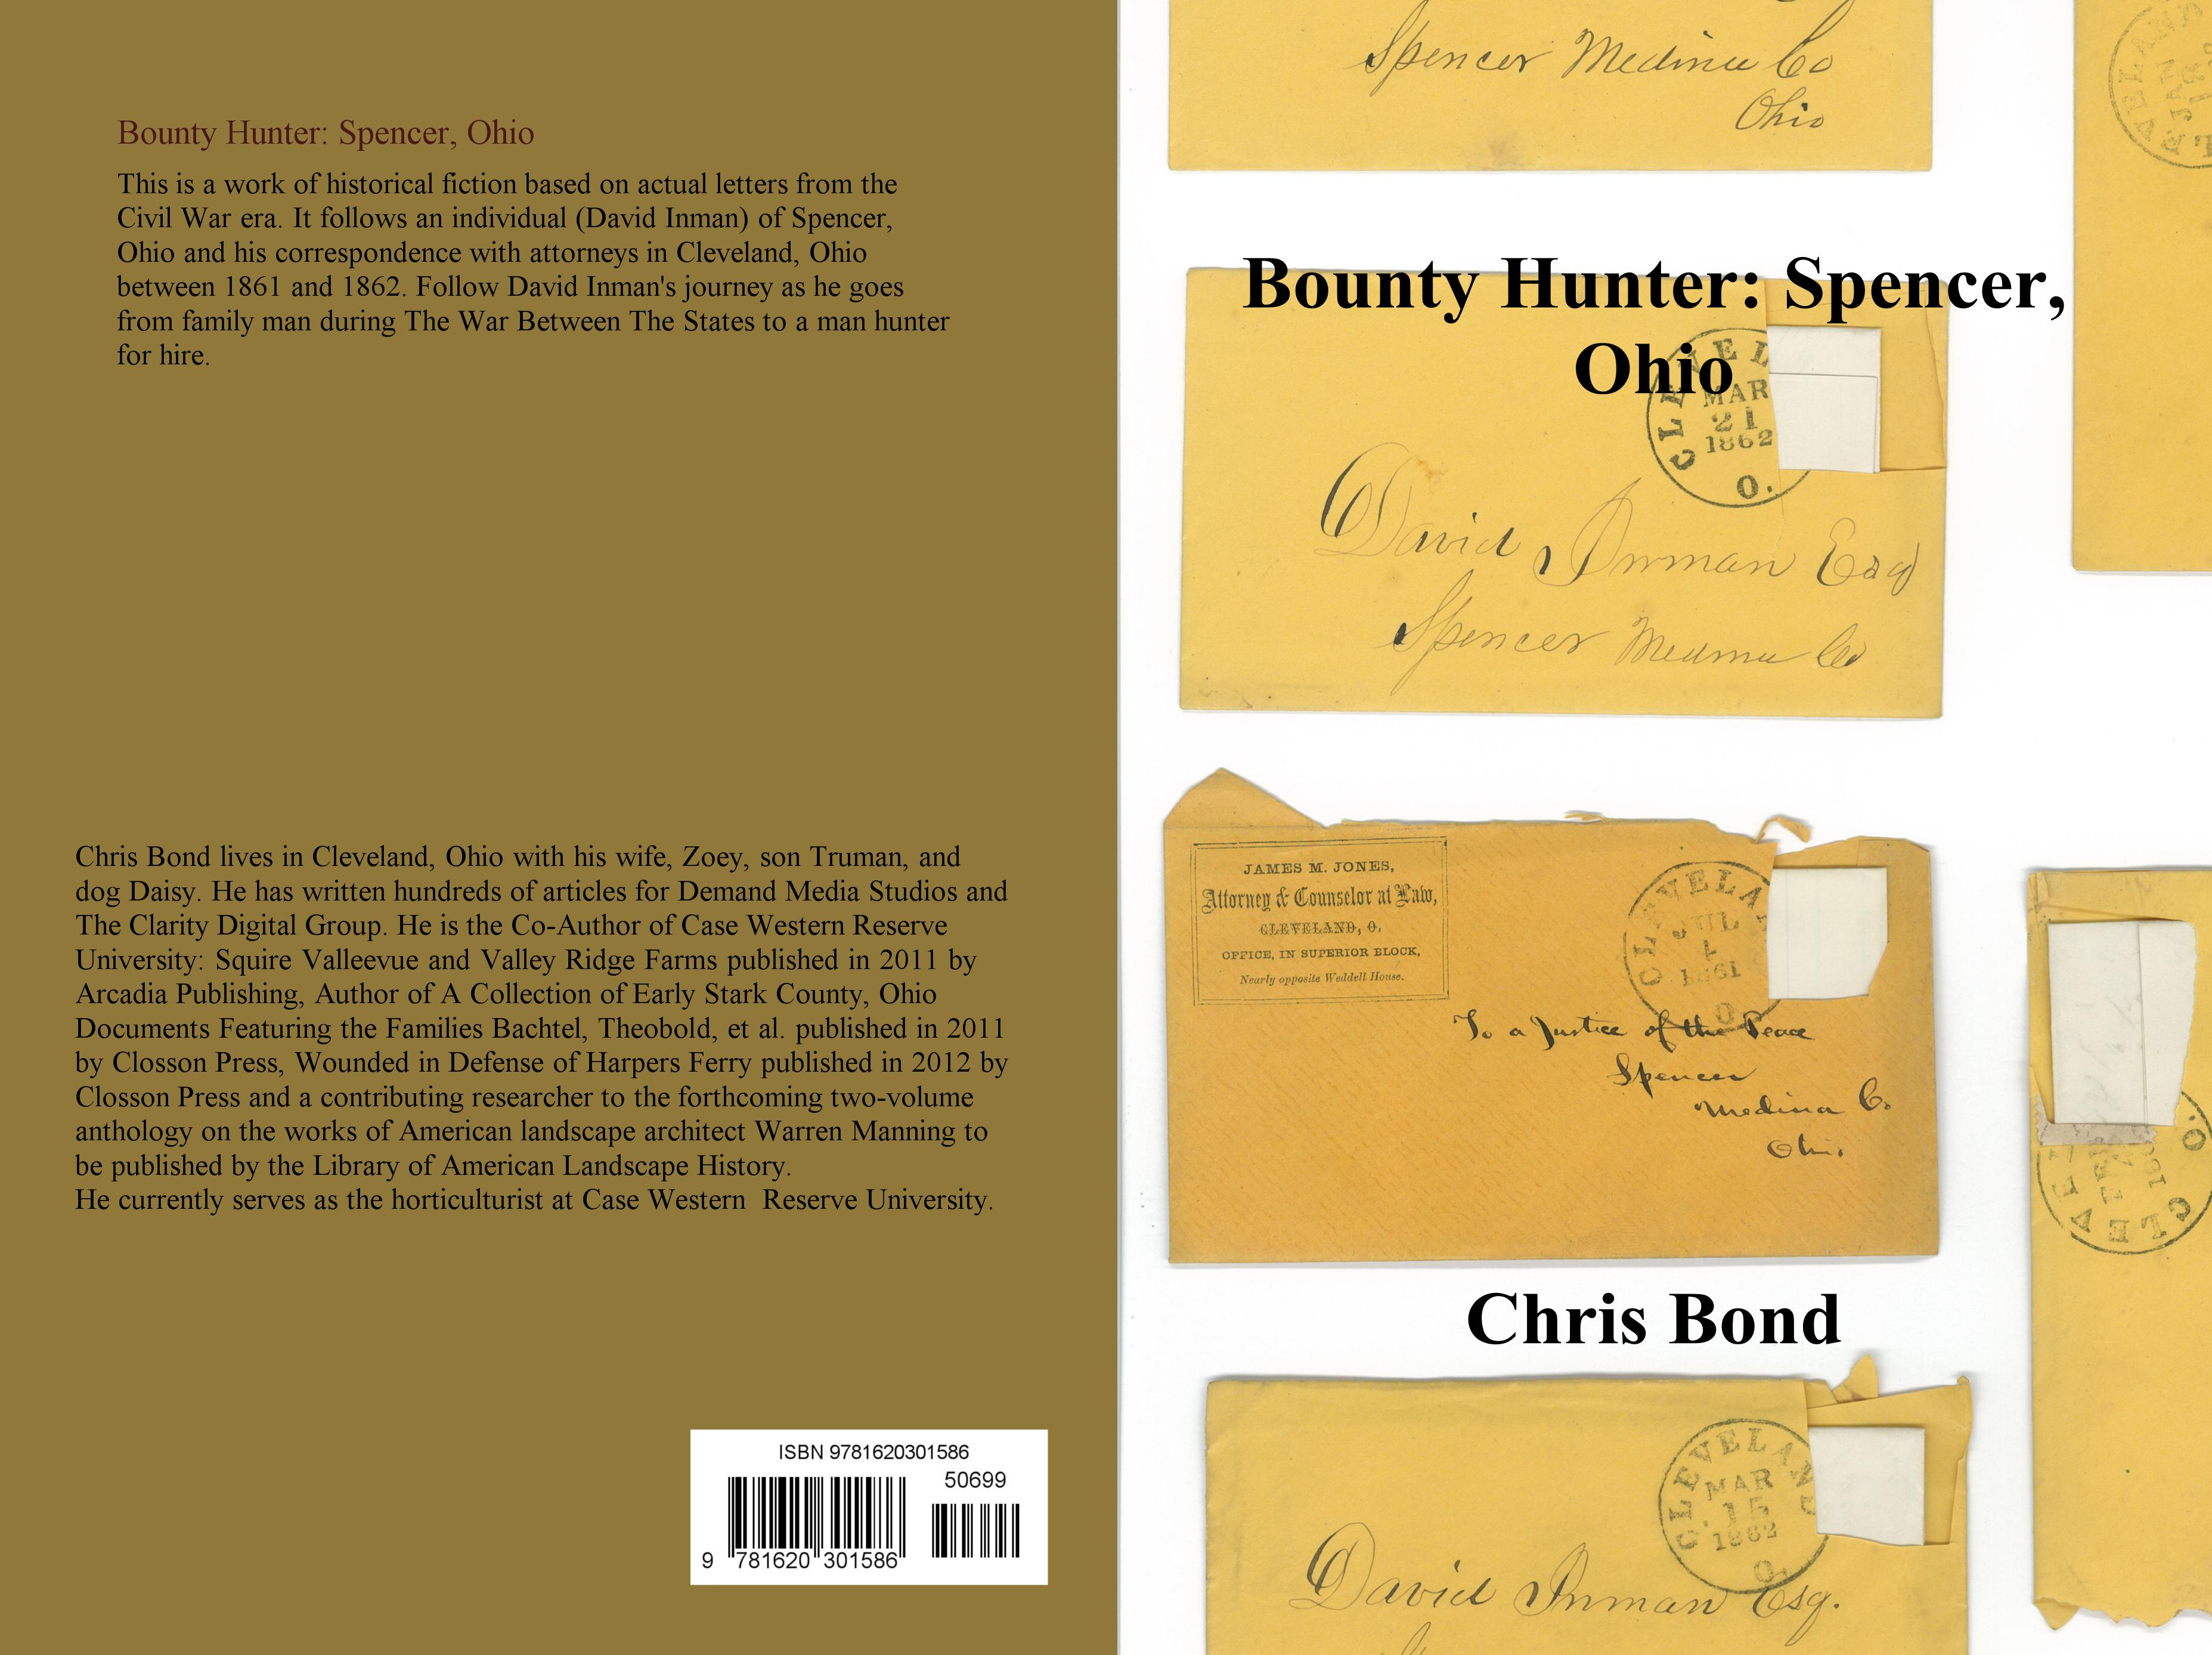 Bounty Hunter: Spencer, Ohio cover image